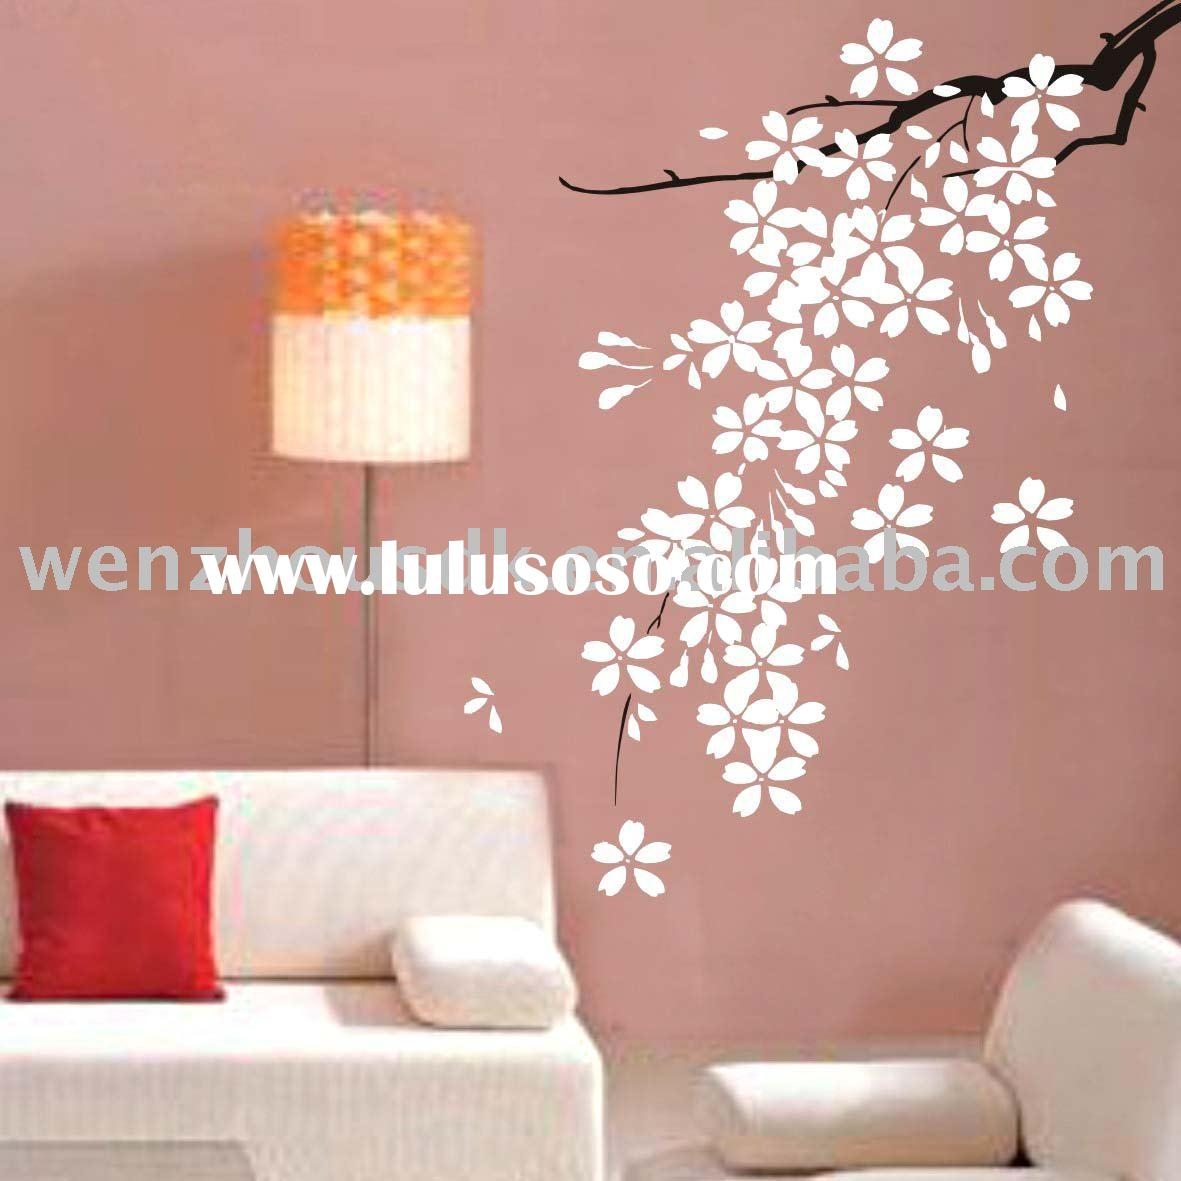 Wall decor decals simple home decoration wall sticker decal decorations wall sticker decal decorations amipublicfo Gallery